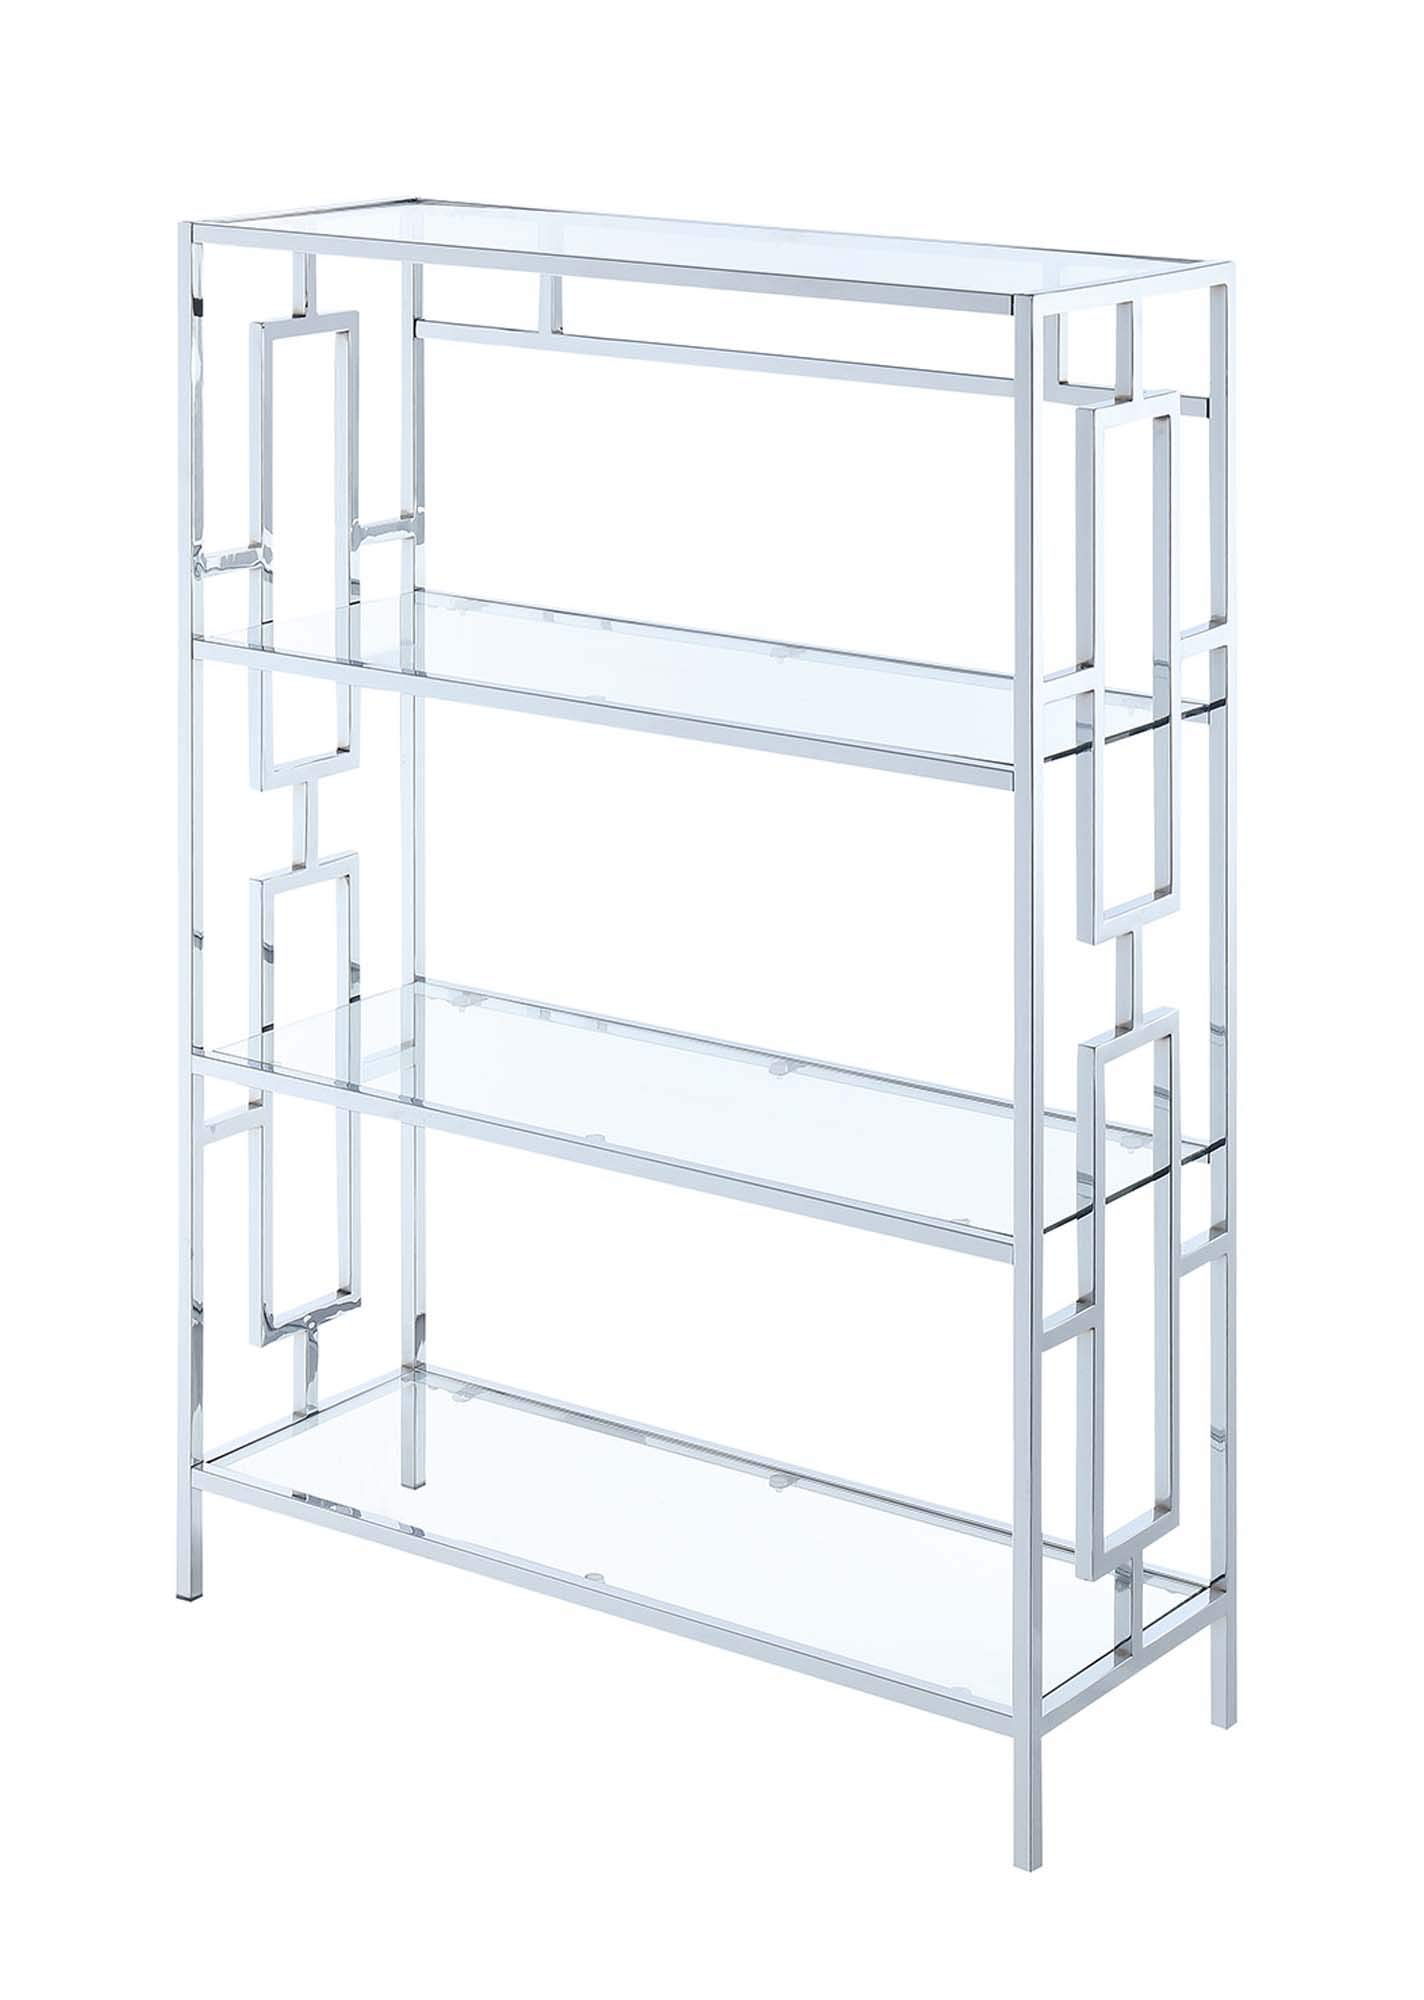 Convenience Concepts Town Square Chrome 4-Tier Bookcase, Clear Glass Frame by Convenience Concepts